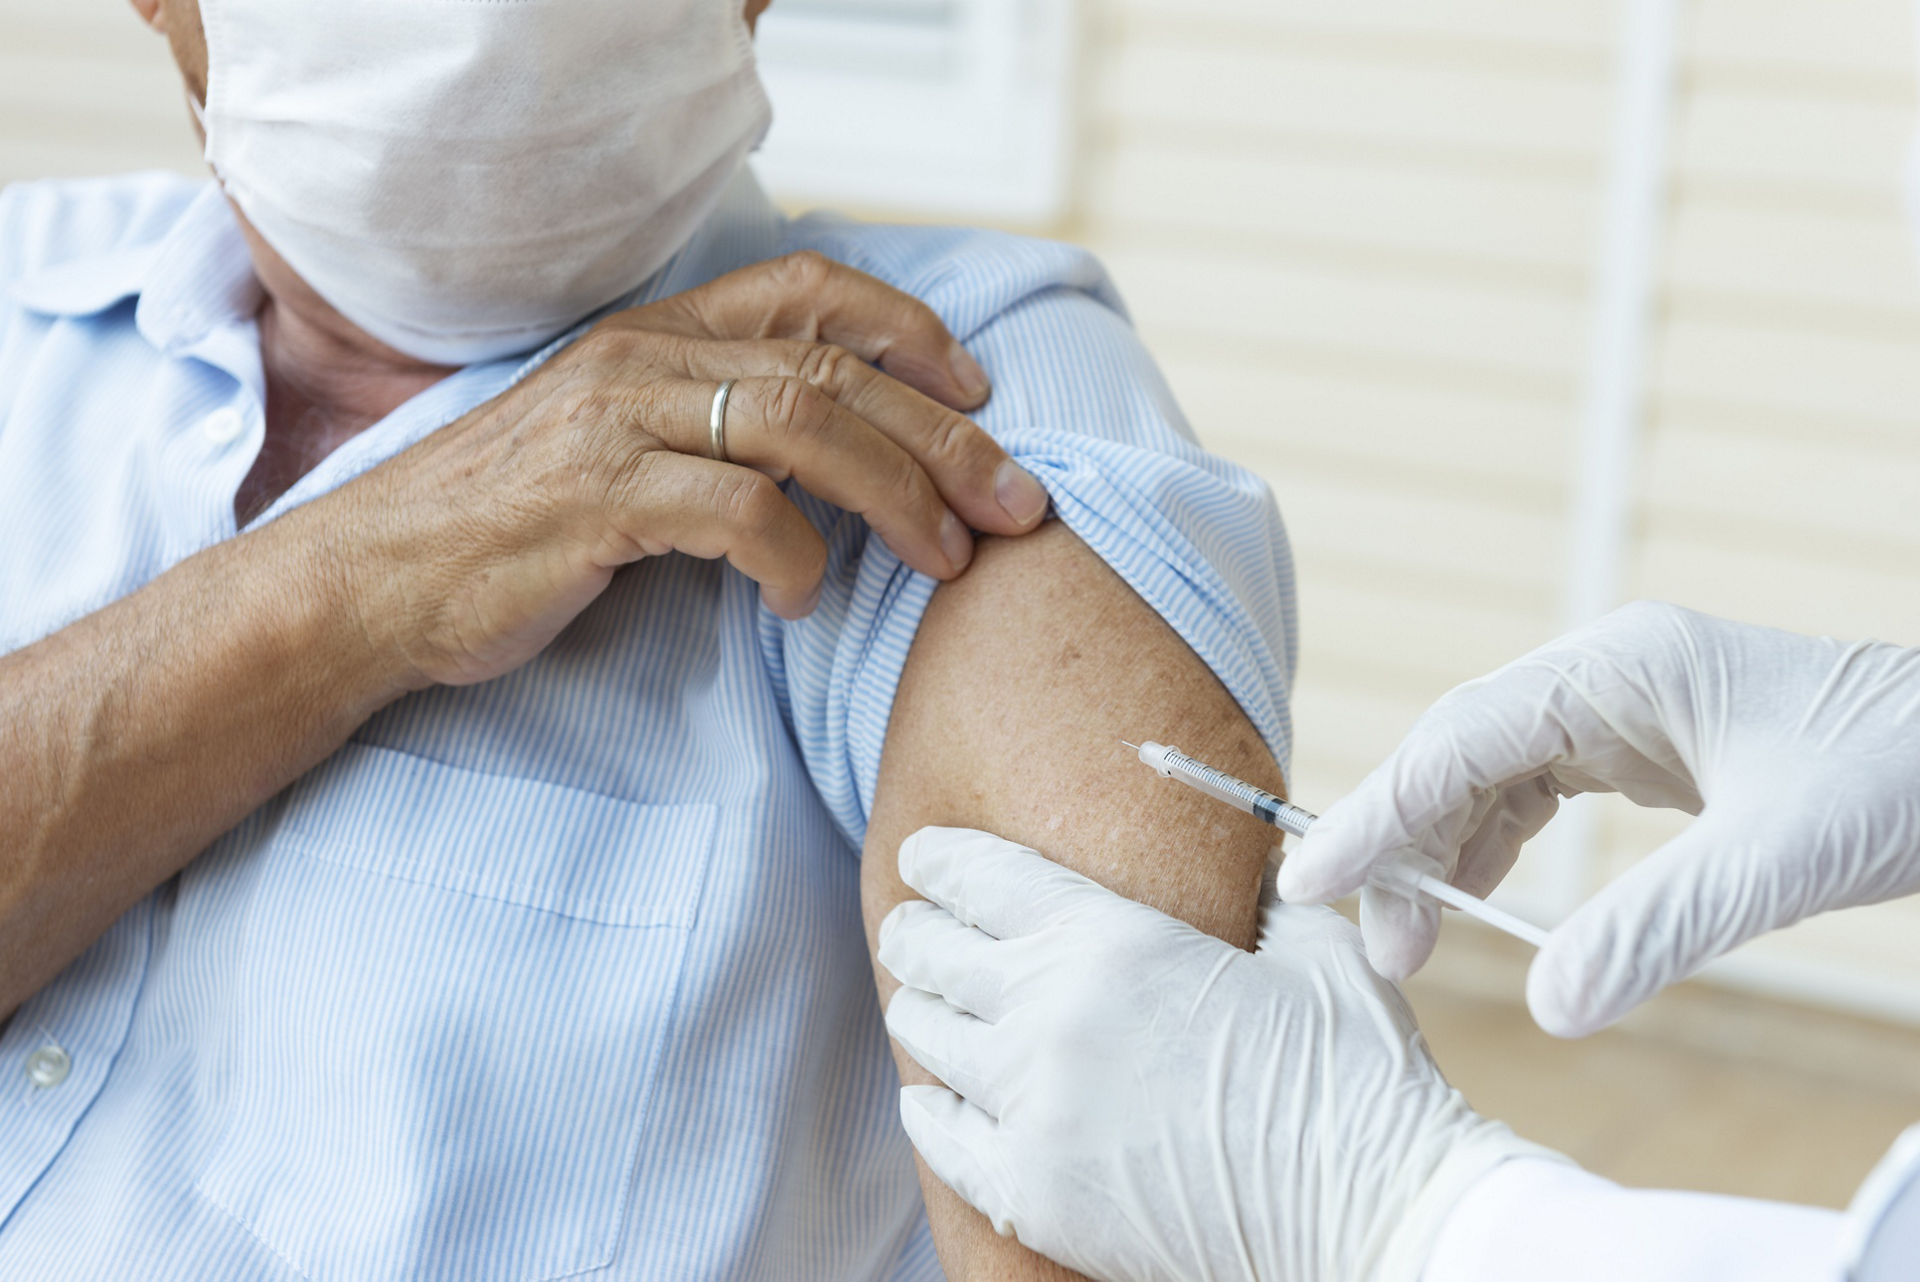 Covid-19 Vaccine starts to be rolled out to the vulnerable